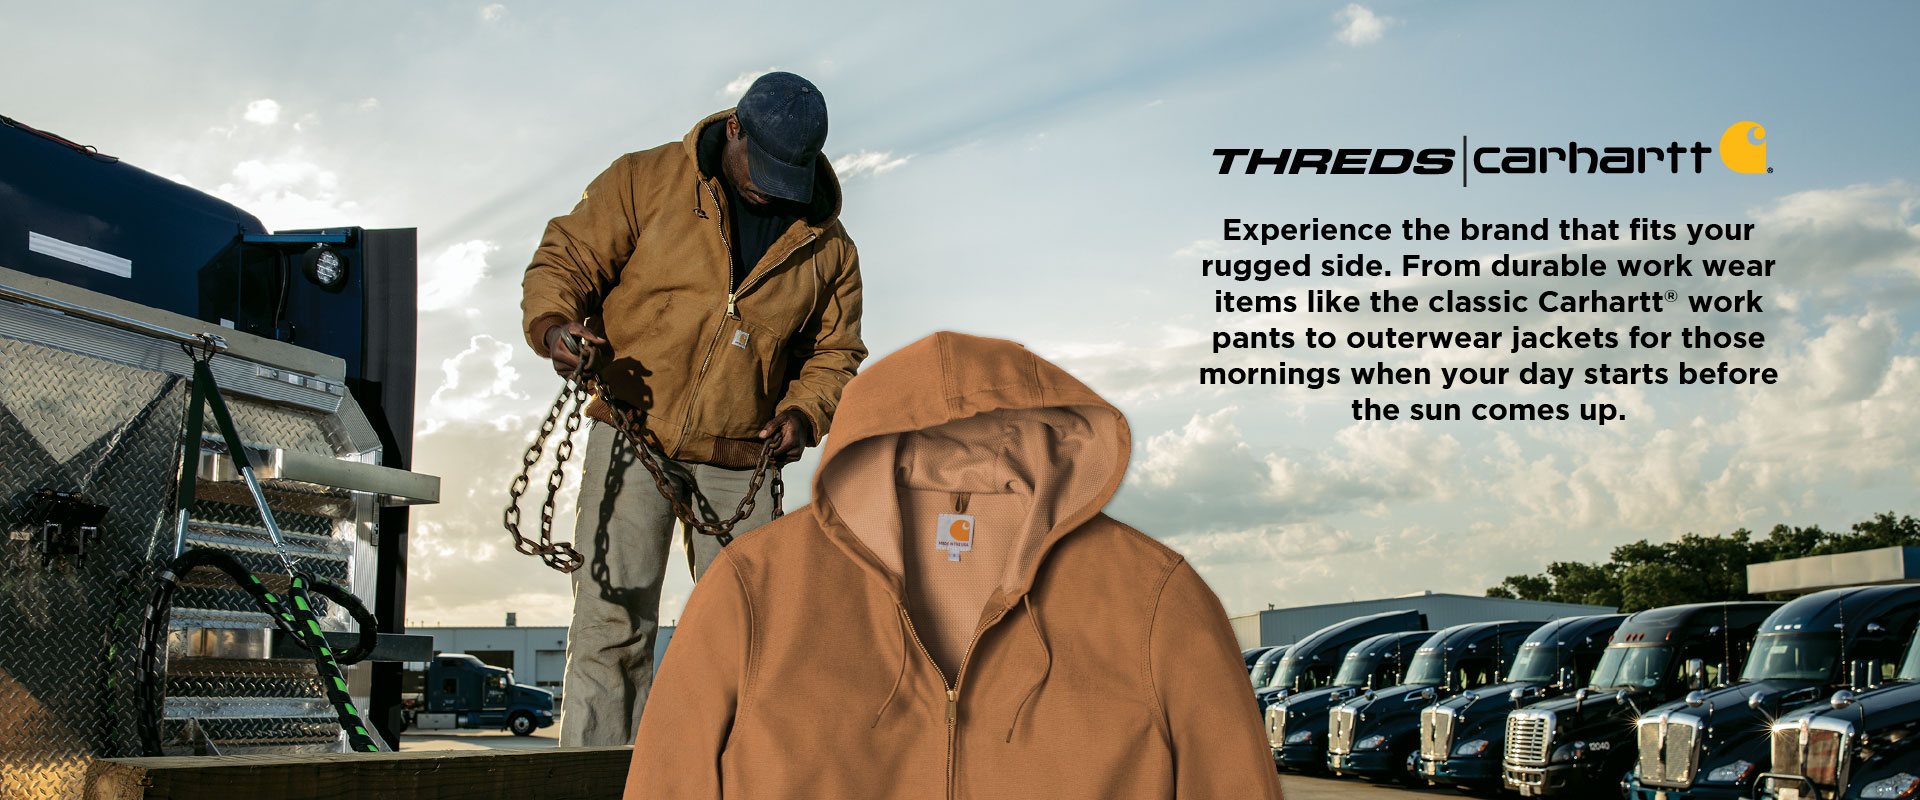 1617d20cc3 Carhartt — Threds | Custom Apparel and Promotional Items